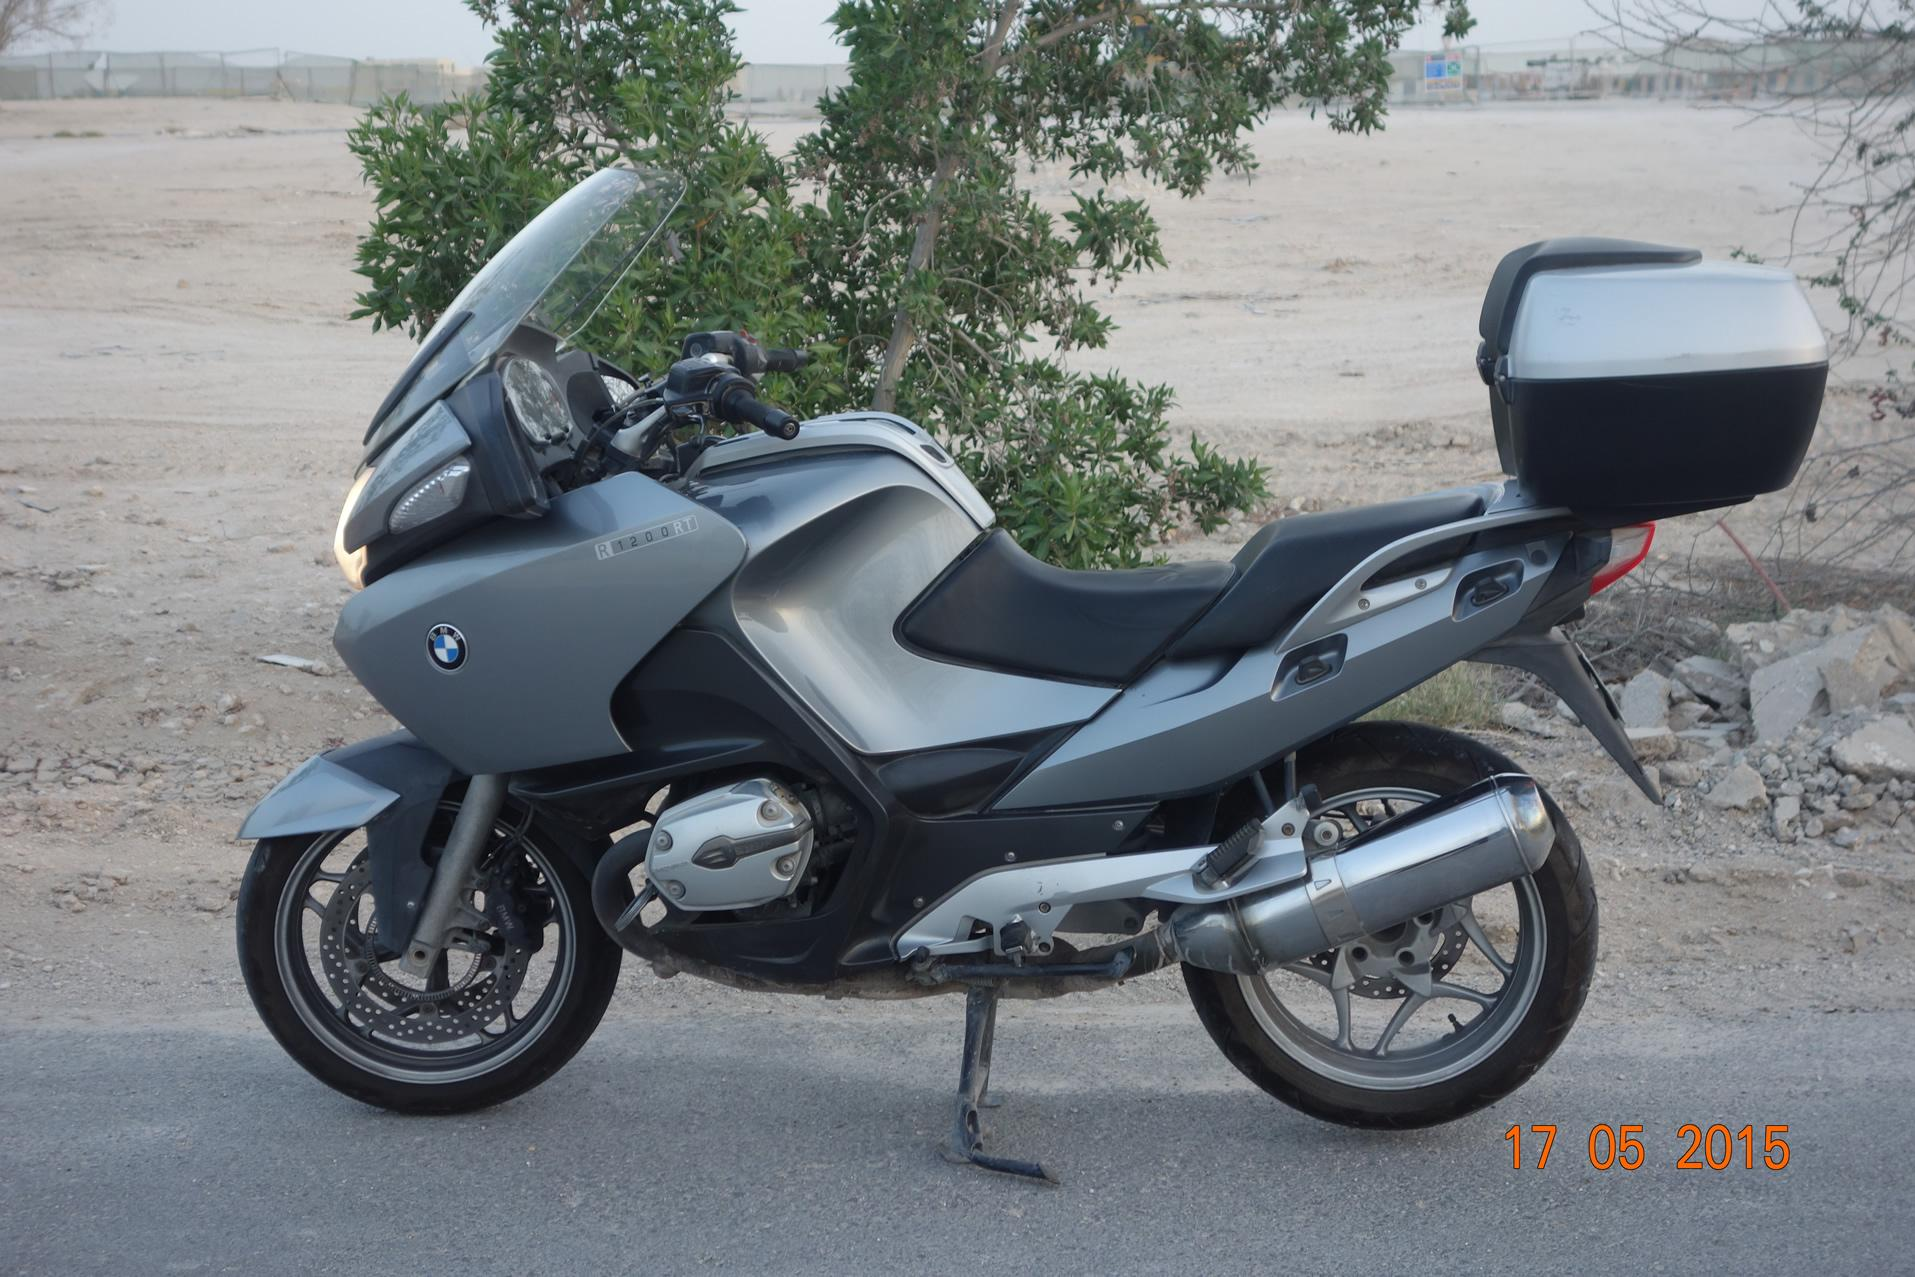 Bmw R1200rt For Sale One Careful Owner Well Looked After Qatar